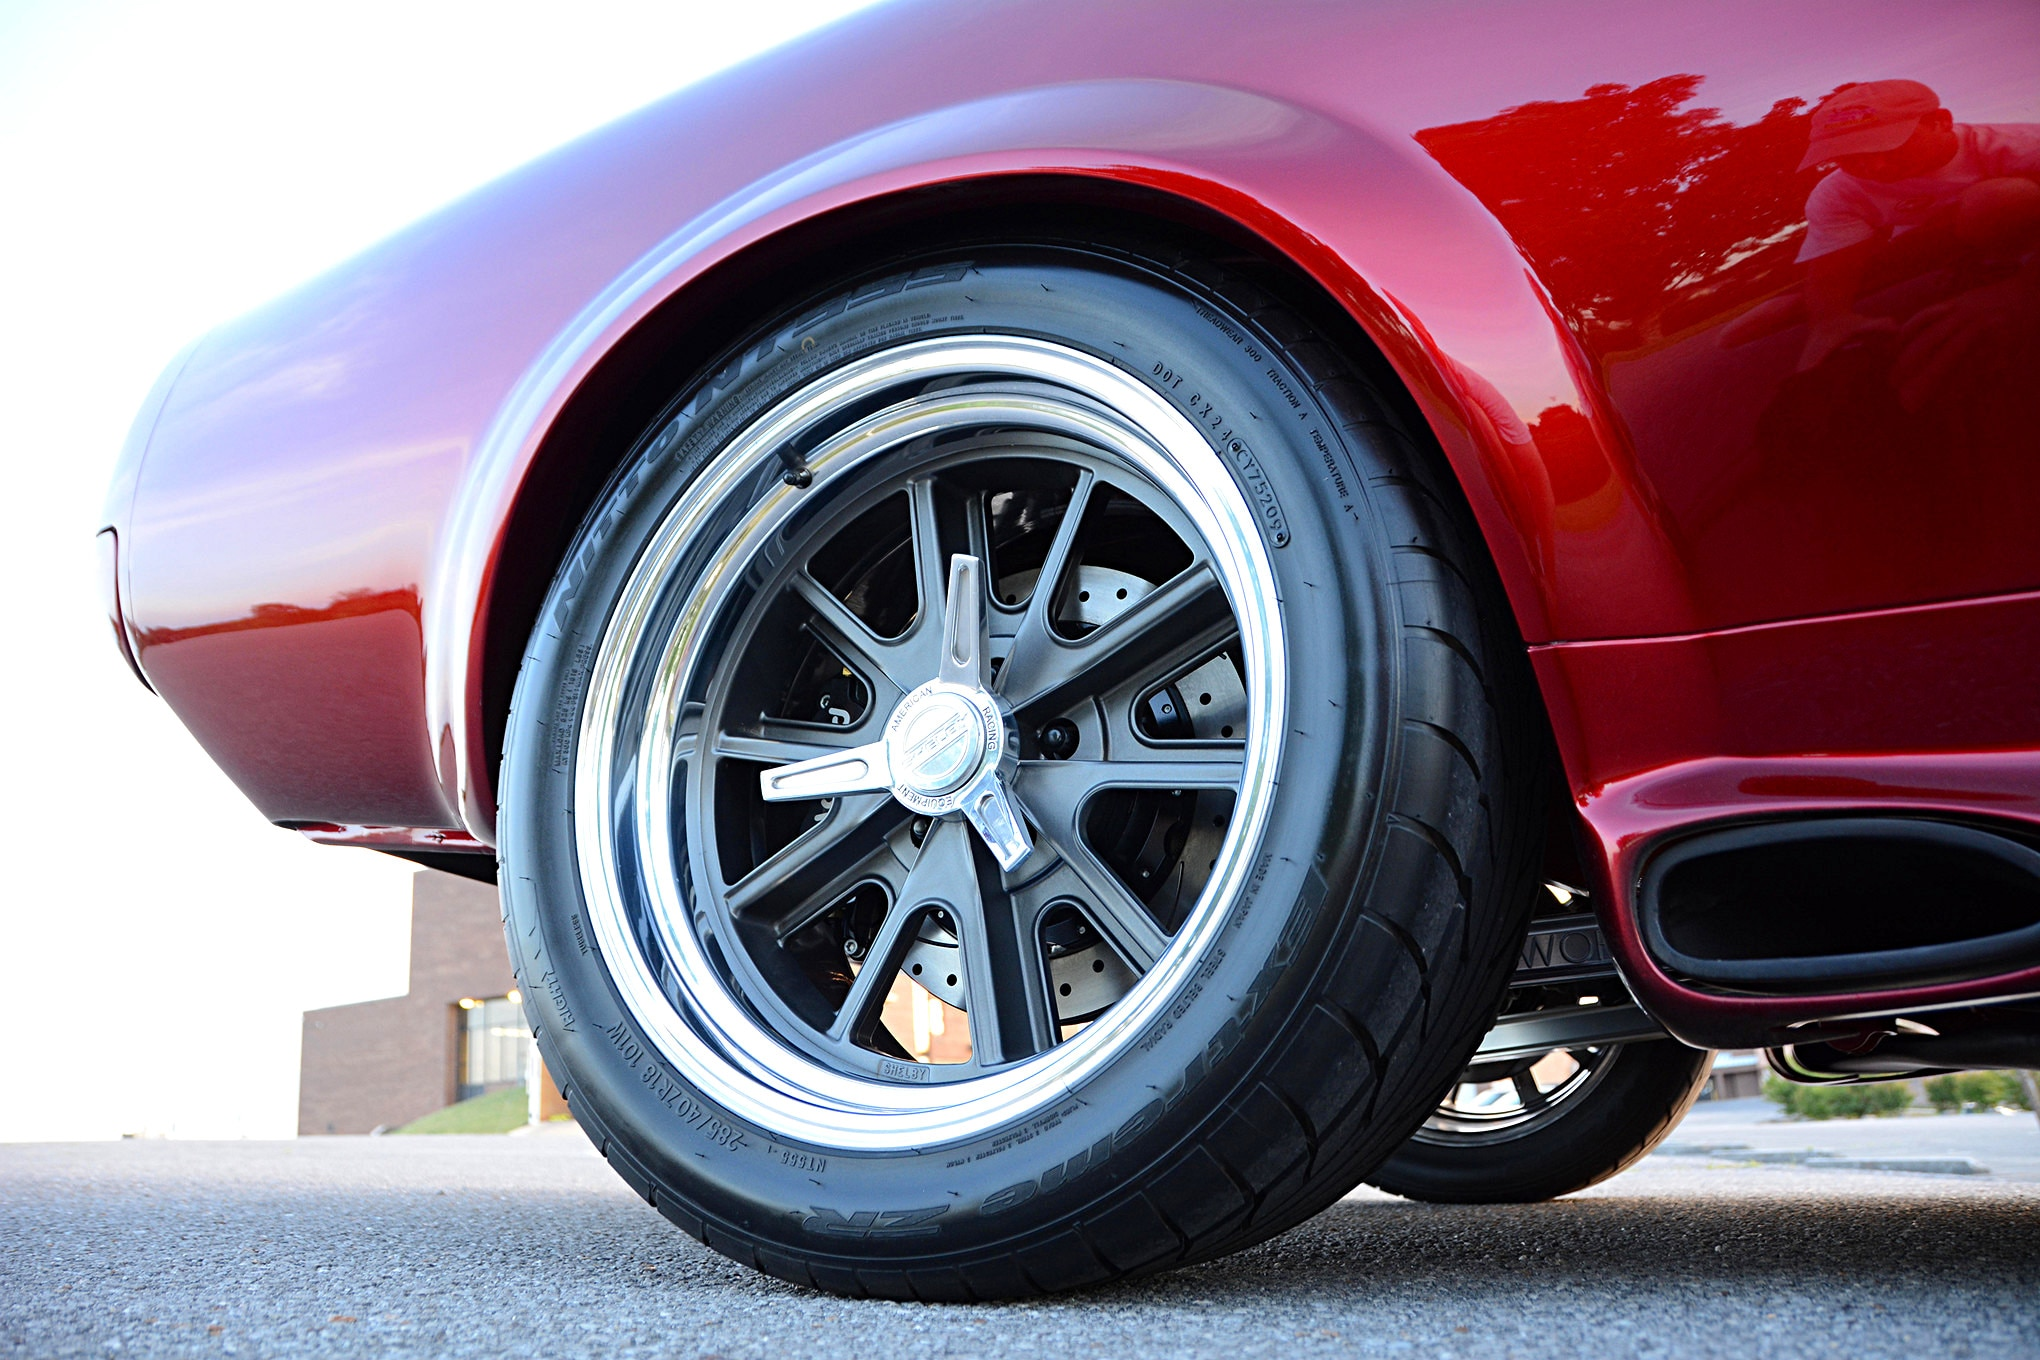 American Racing Shelby wheels are sized at 17x8 and 18x11 inches and wear a set of Nitto 555 tires. Hidden behind the spokes are Wilwood disc brakes, which use 14-inch rotors and a combination of six-piston (front) and four-piston (rear) calipers for big-time braking power.